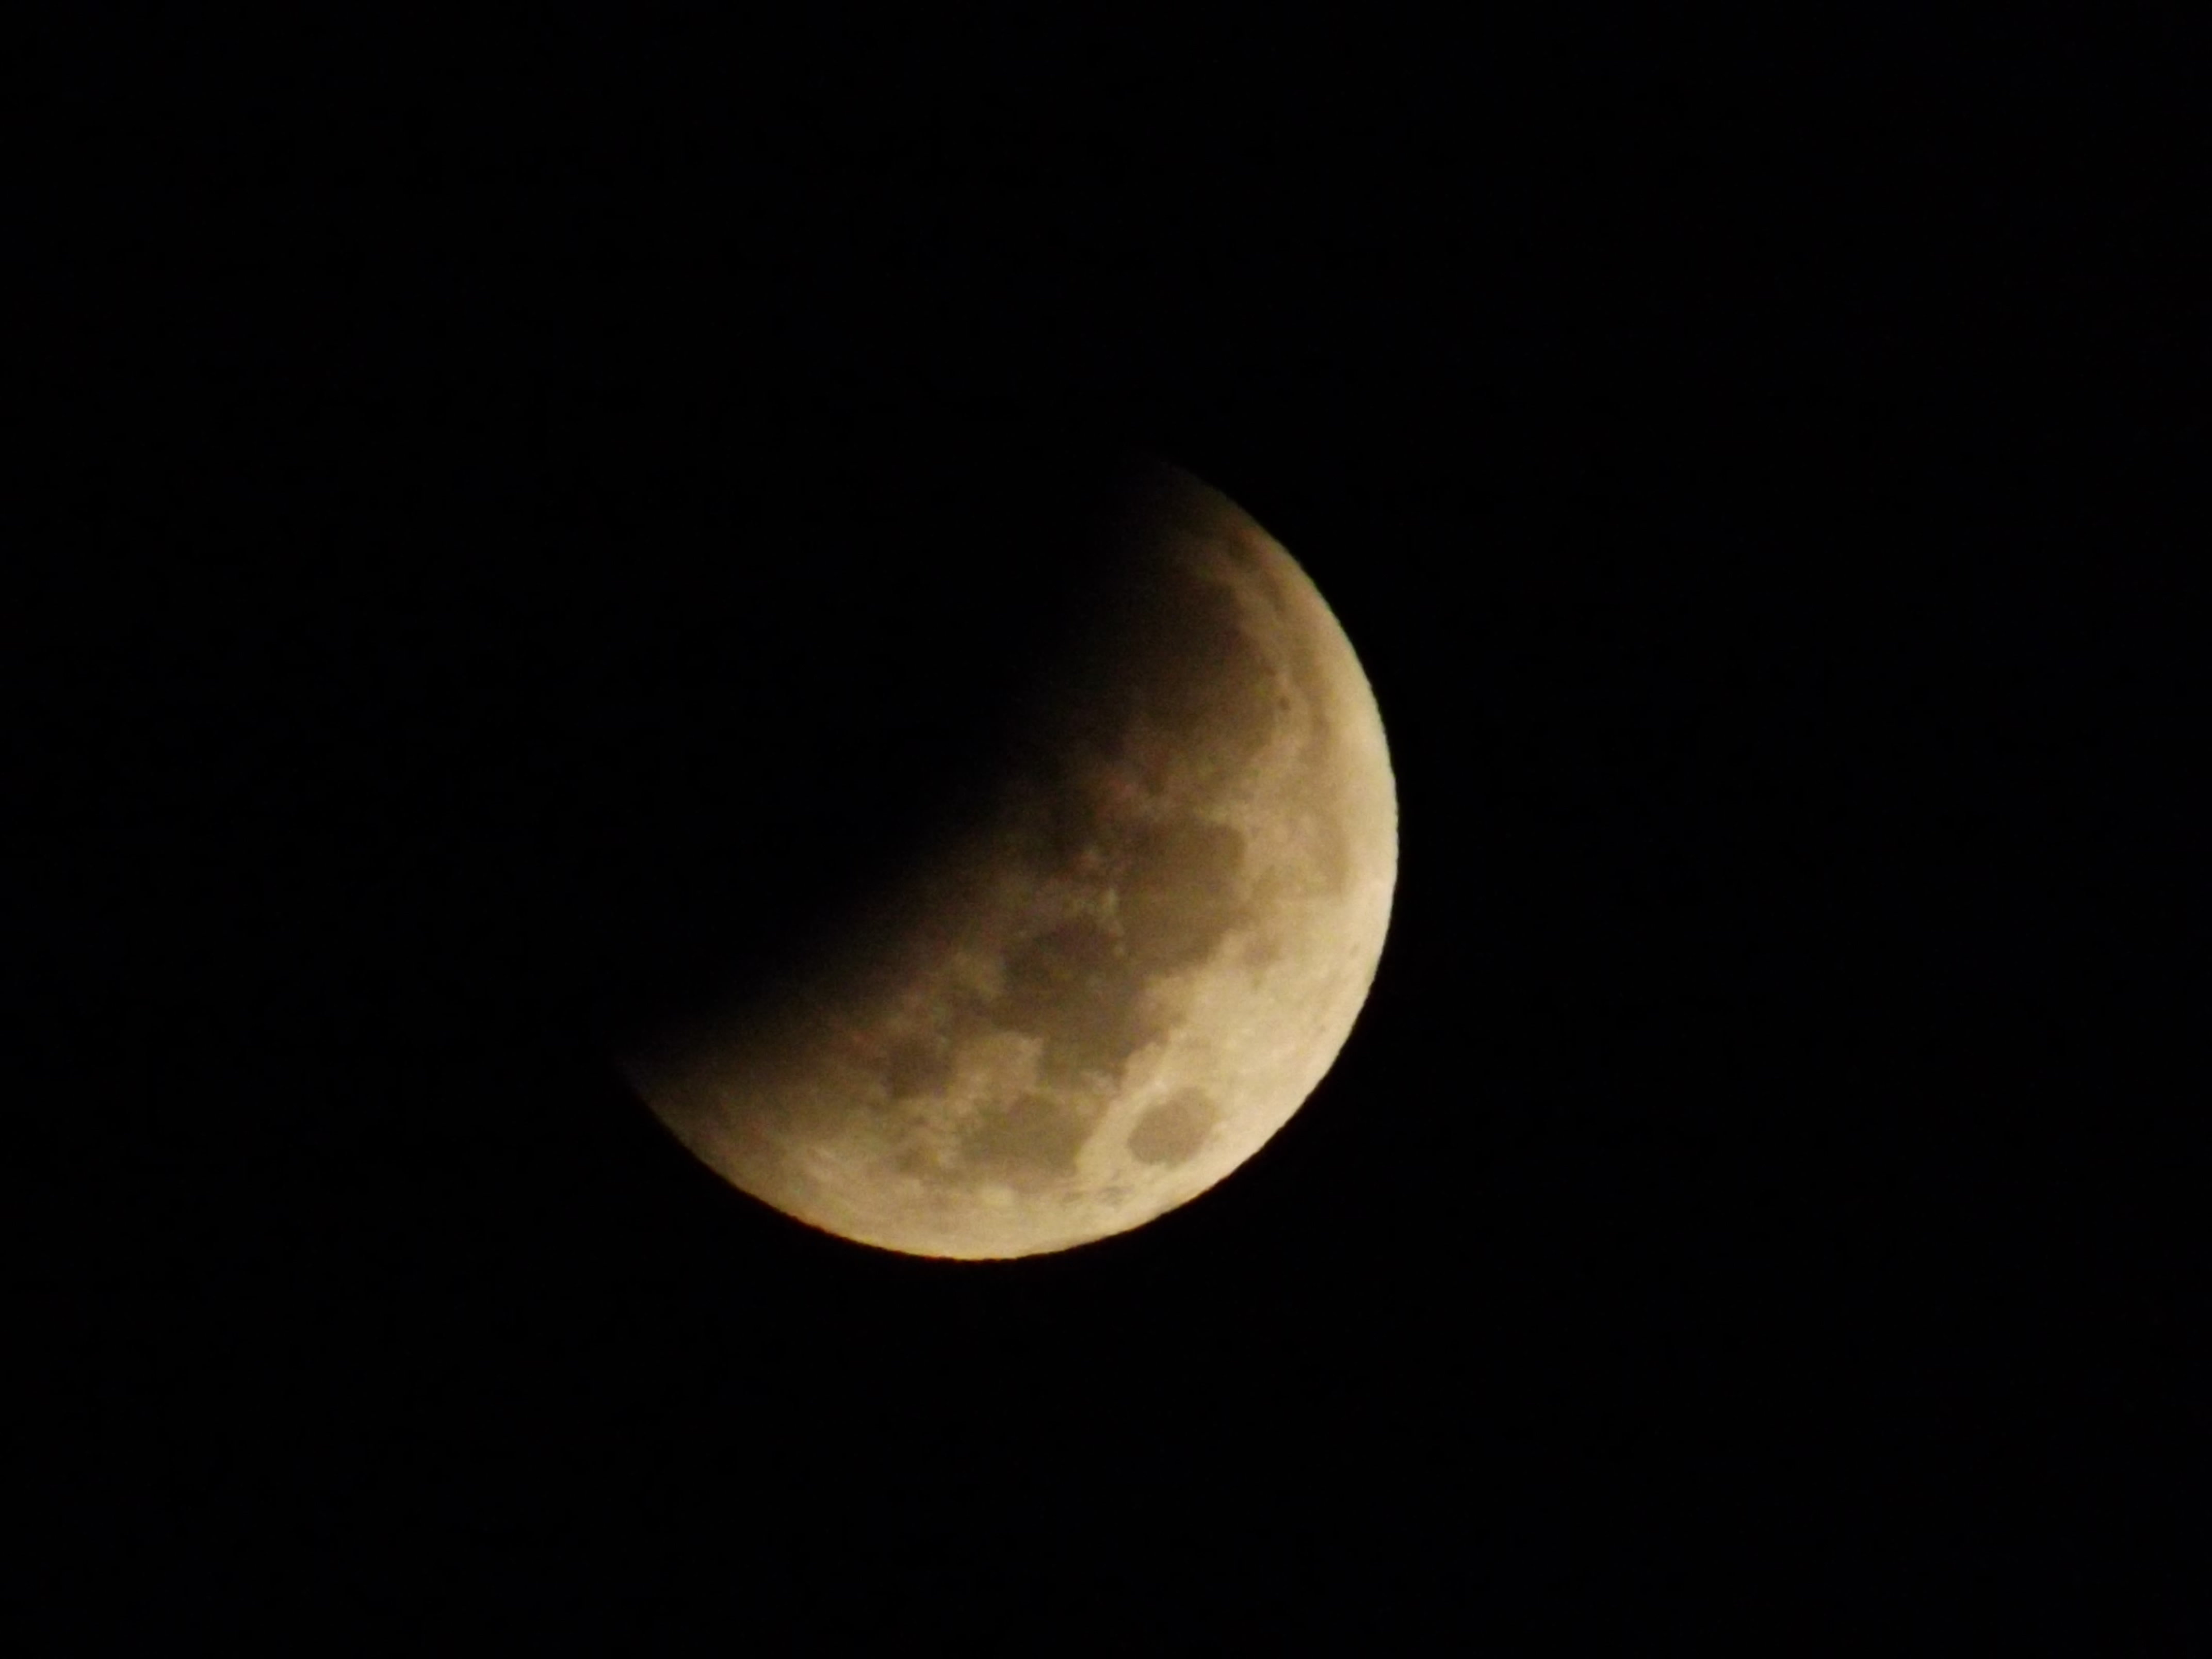 Lunar Eclipse October 2104, blood moon, pink moon, full fish moon,